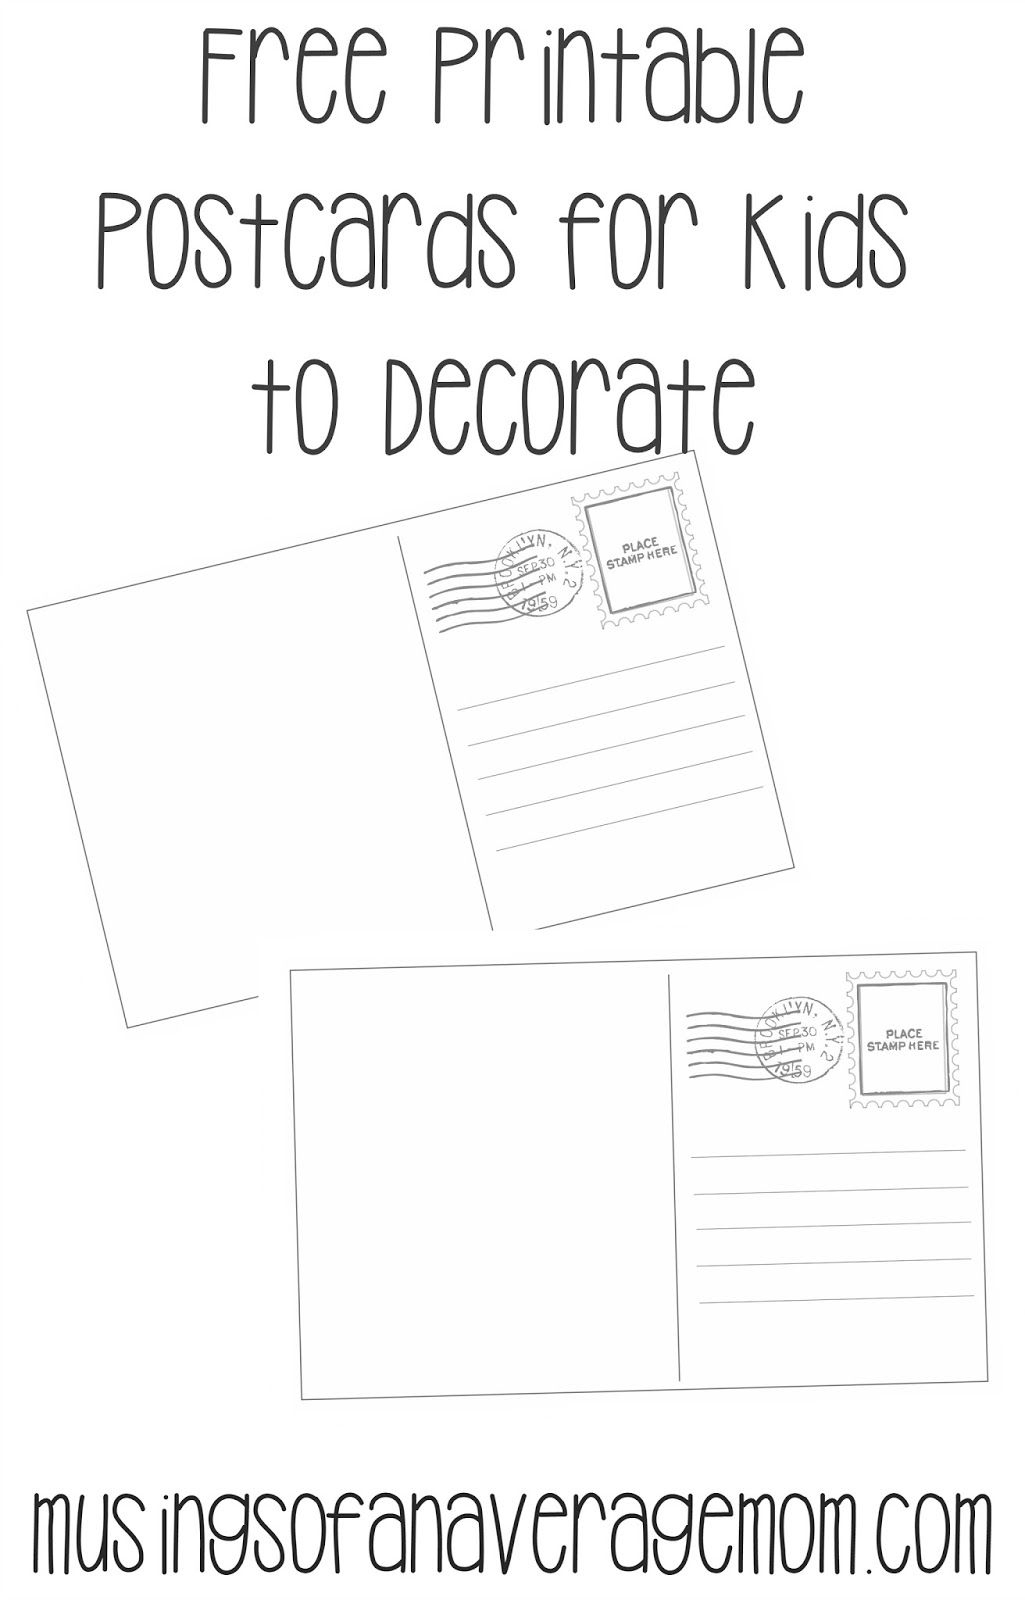 Postcard Templates | Printable Worksheets | Pinterest | Free - Free Printable Postcard Template